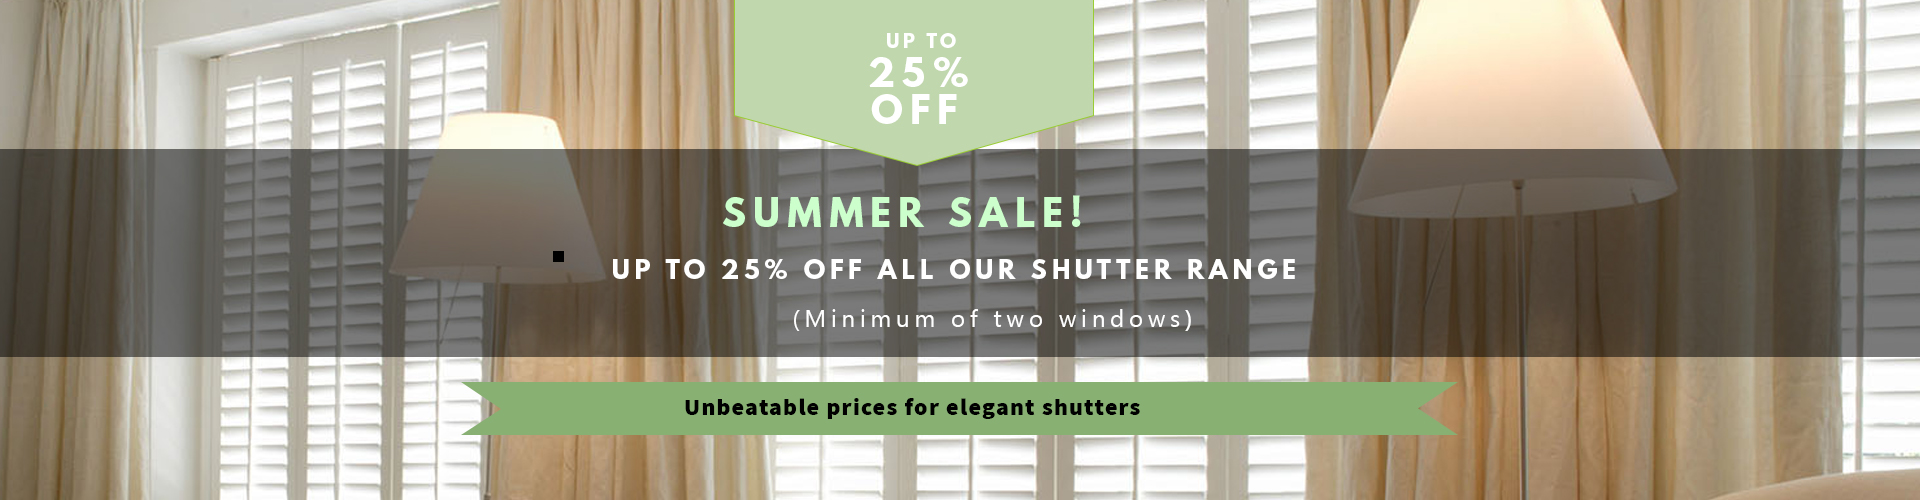 Shutterwise Summer Sale Now On